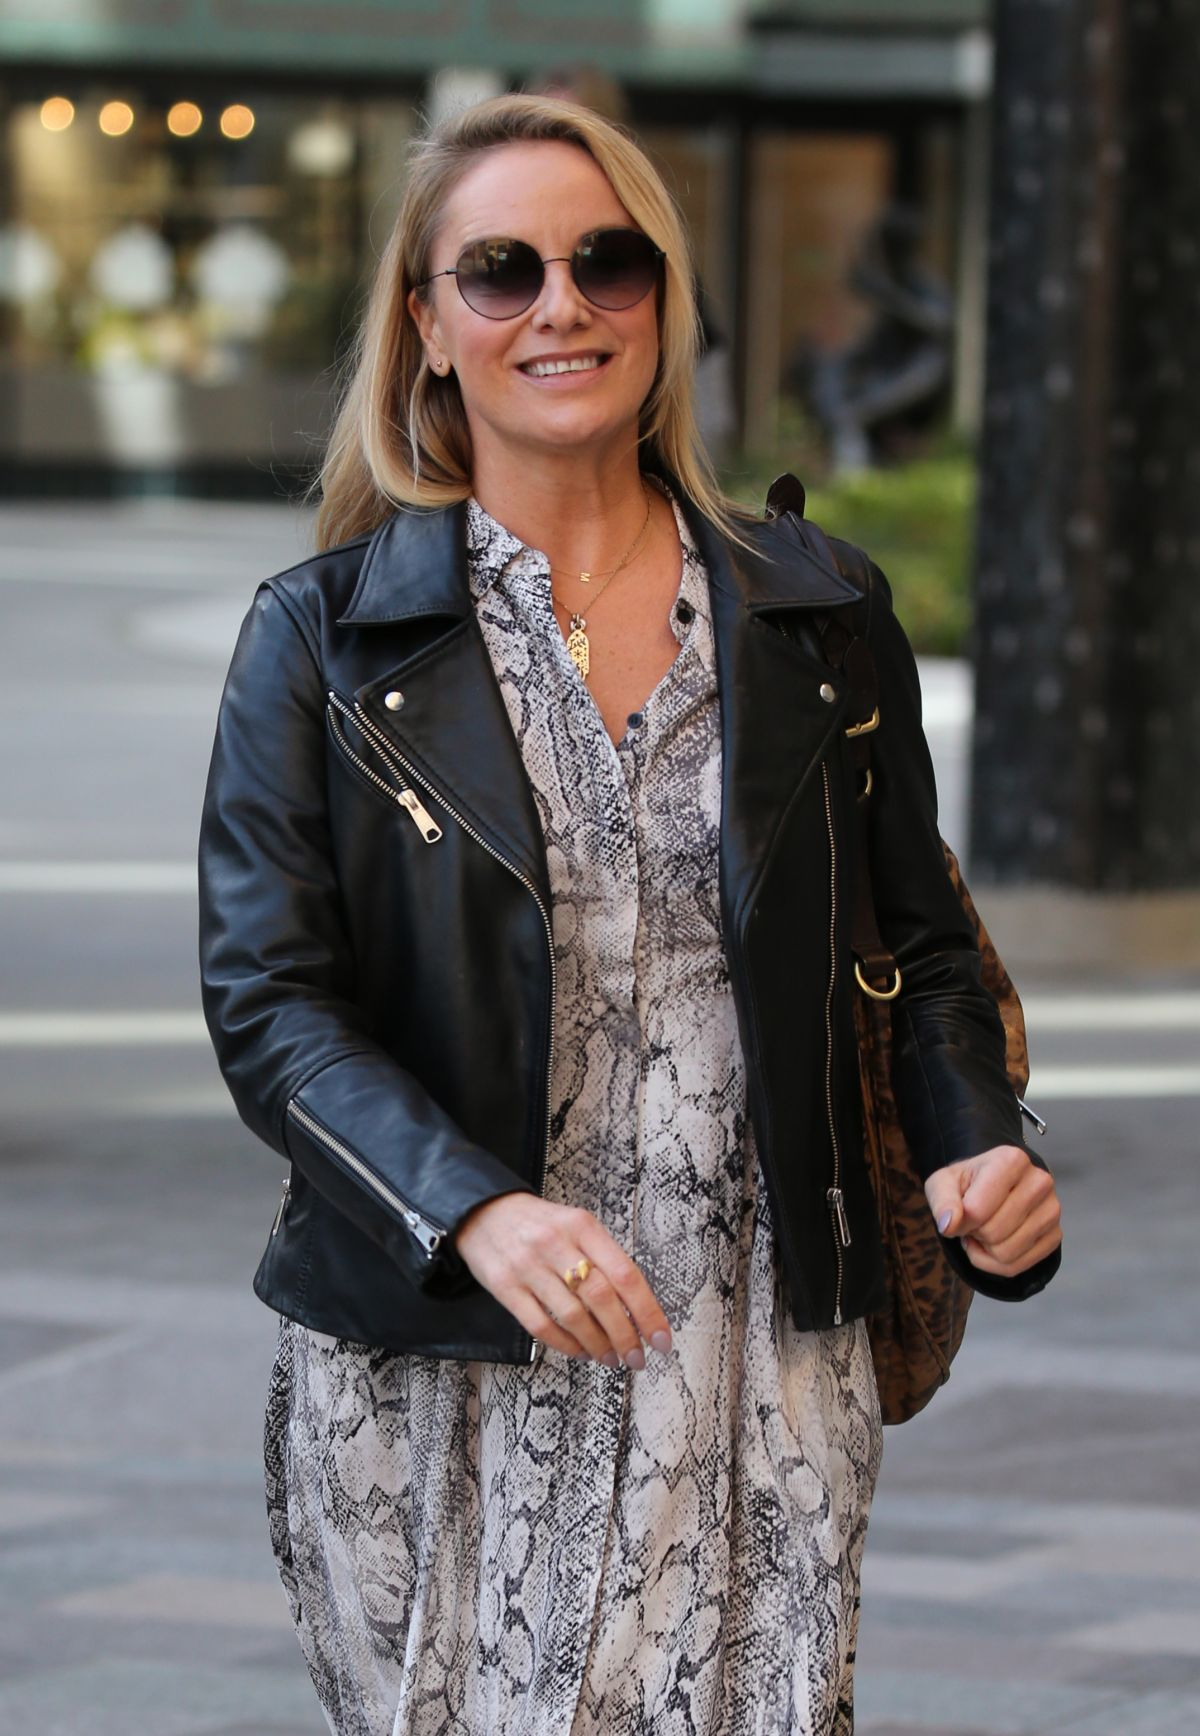 tamzin outhwaite - photo #46